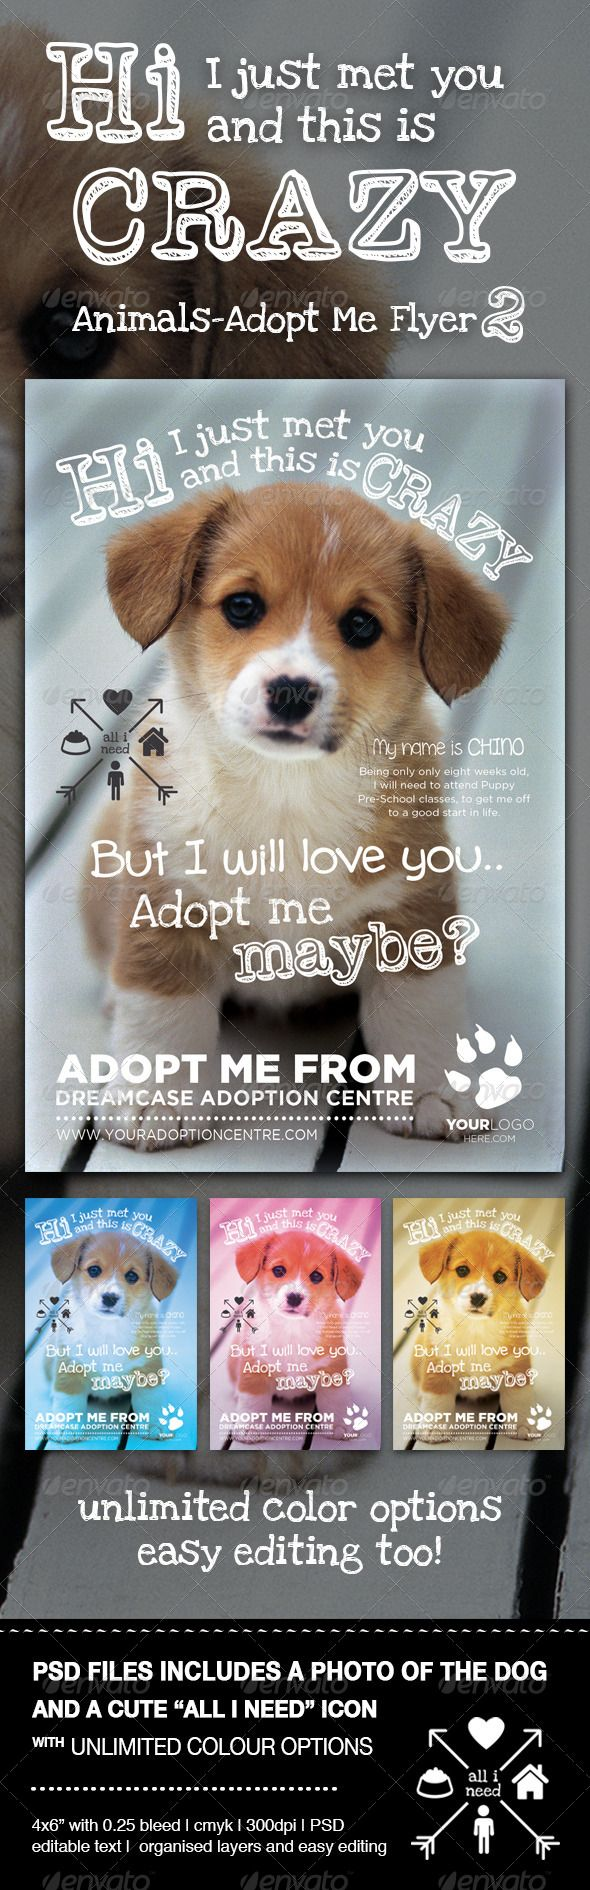 animal shelter services flyers - Timiz.conceptzmusic.co